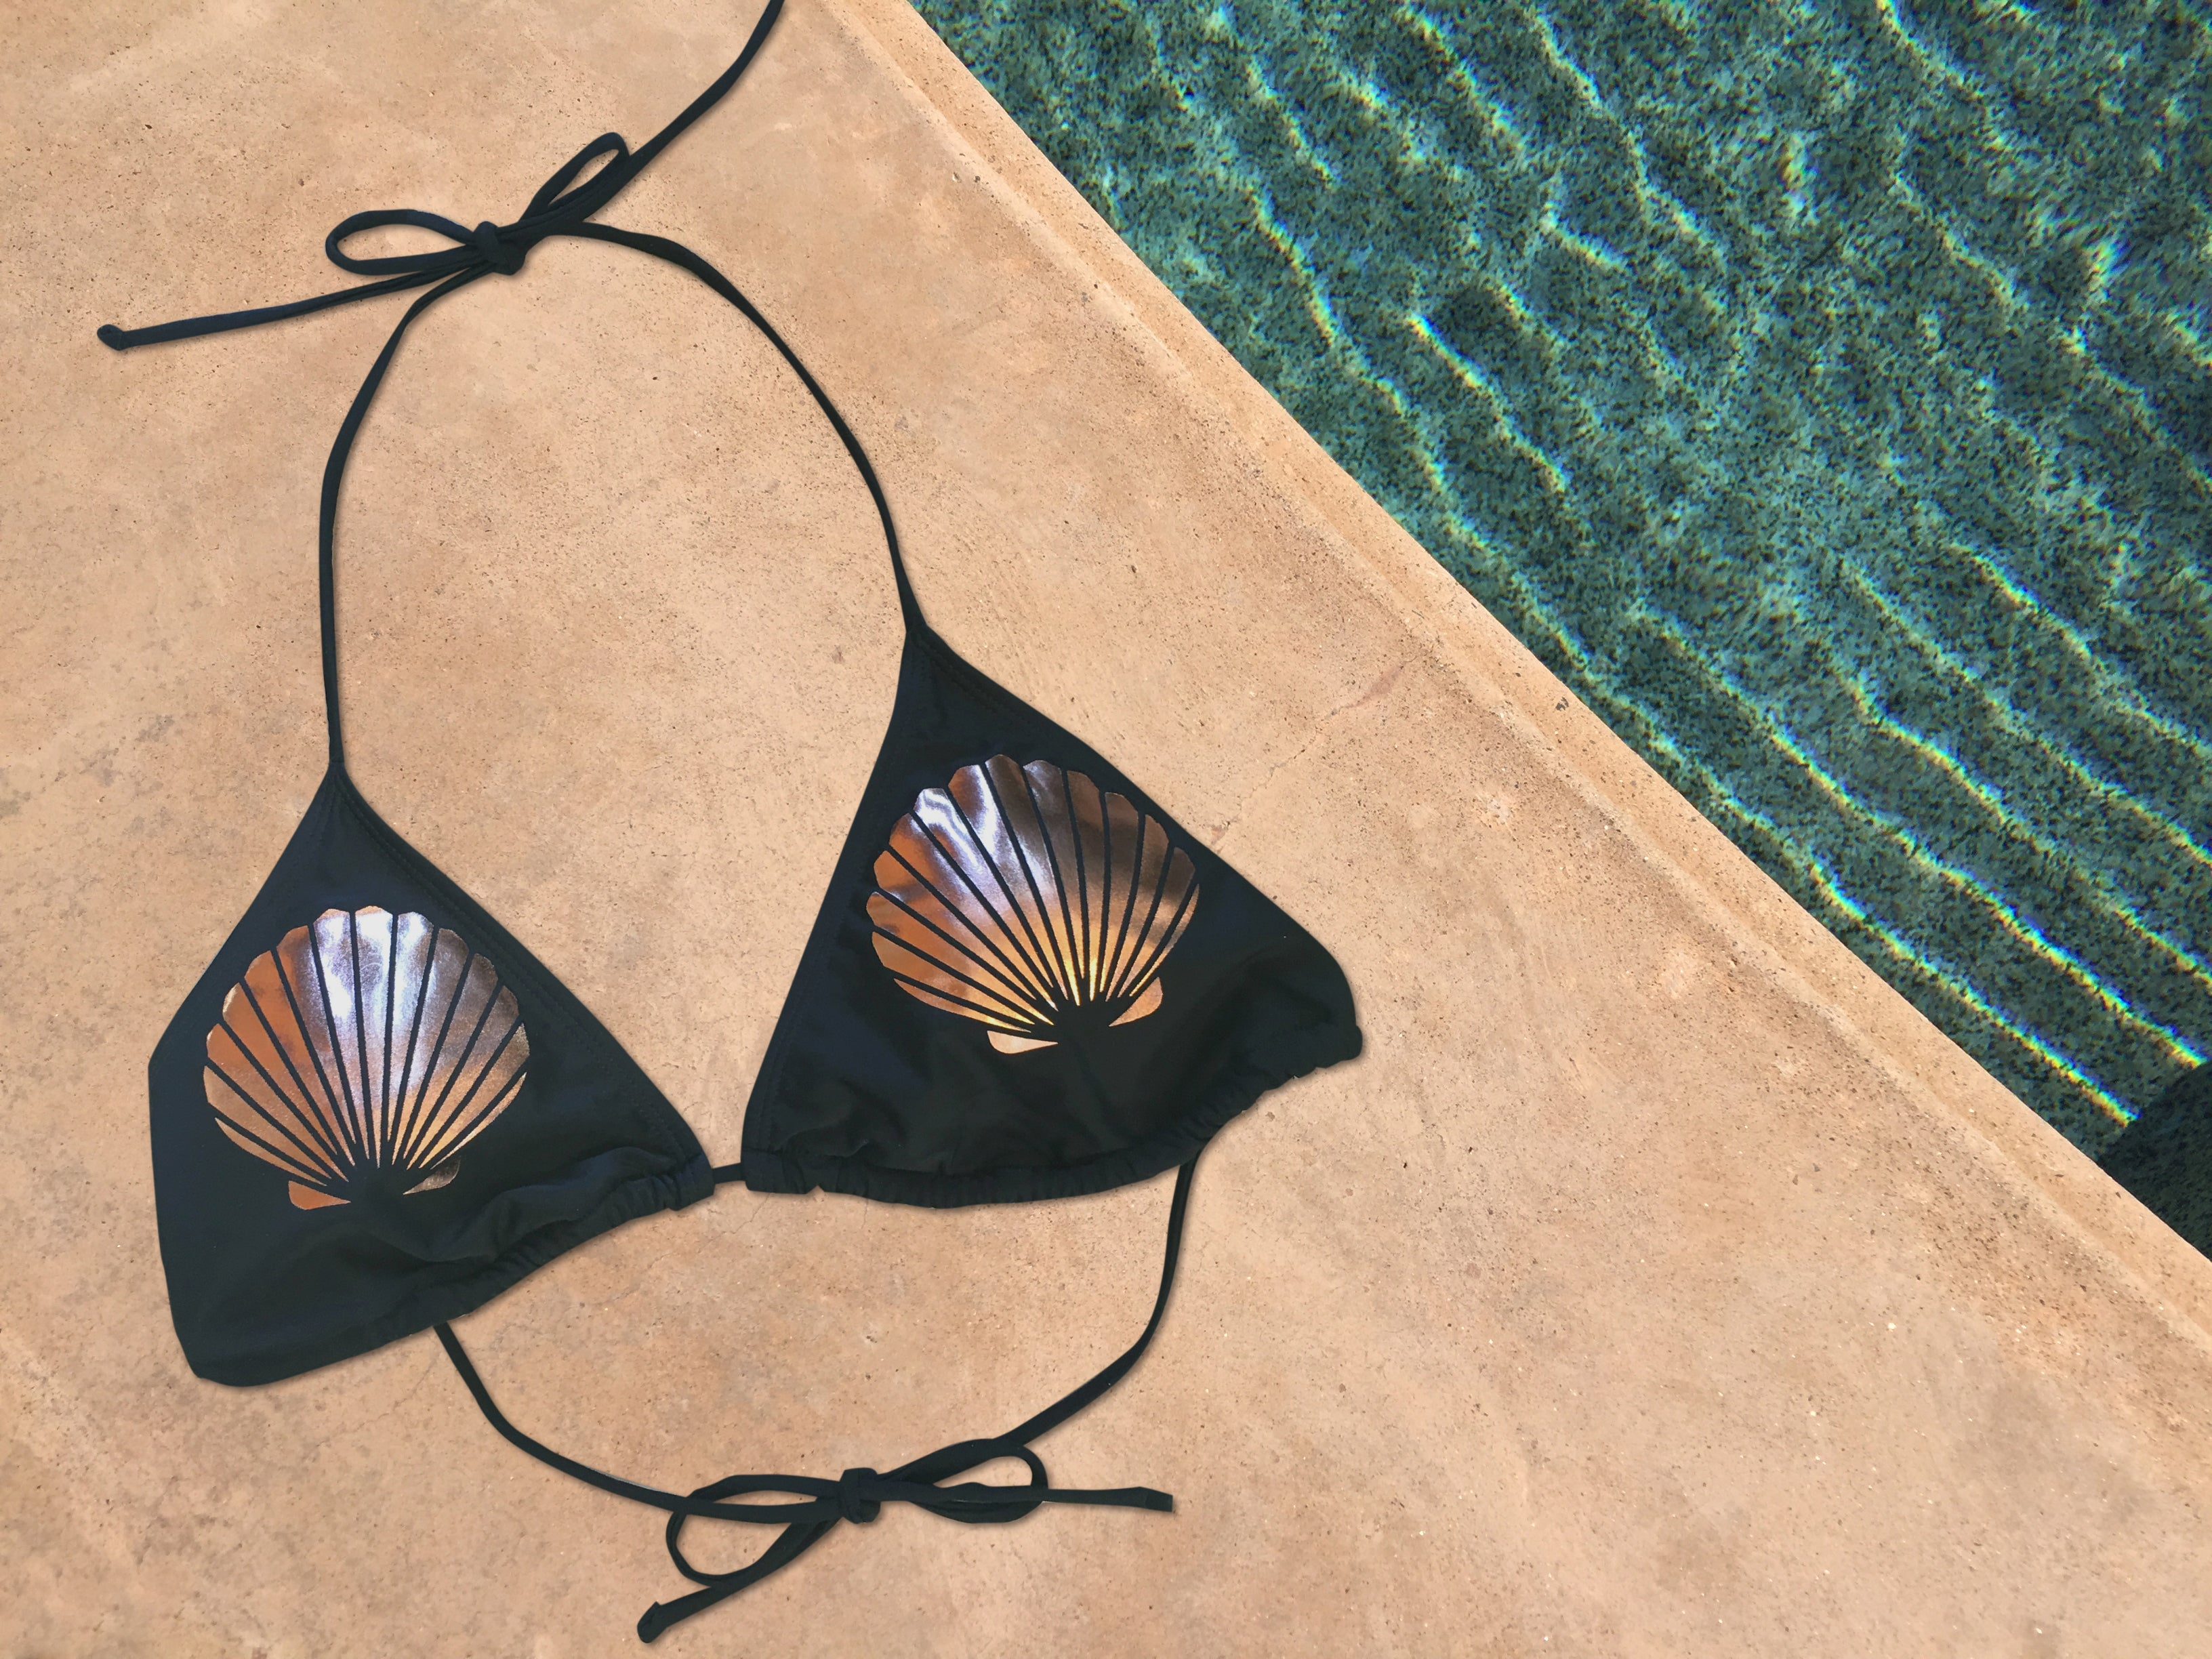 Rose Gold Mermaid Shell Bikini Top - Cape Cali